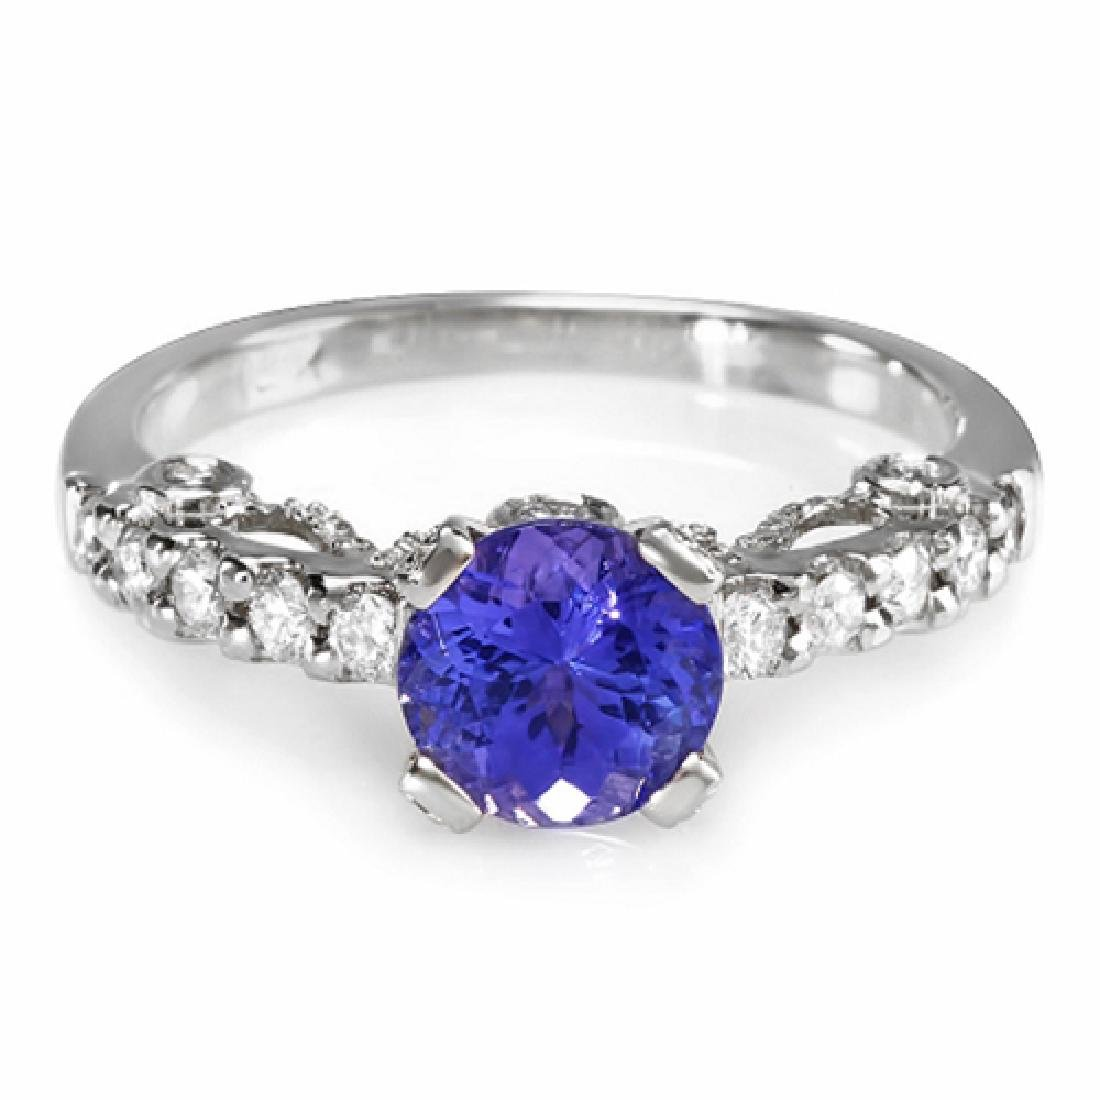 1.52 Carat Natural Tanzanite 14K Solid White Gold